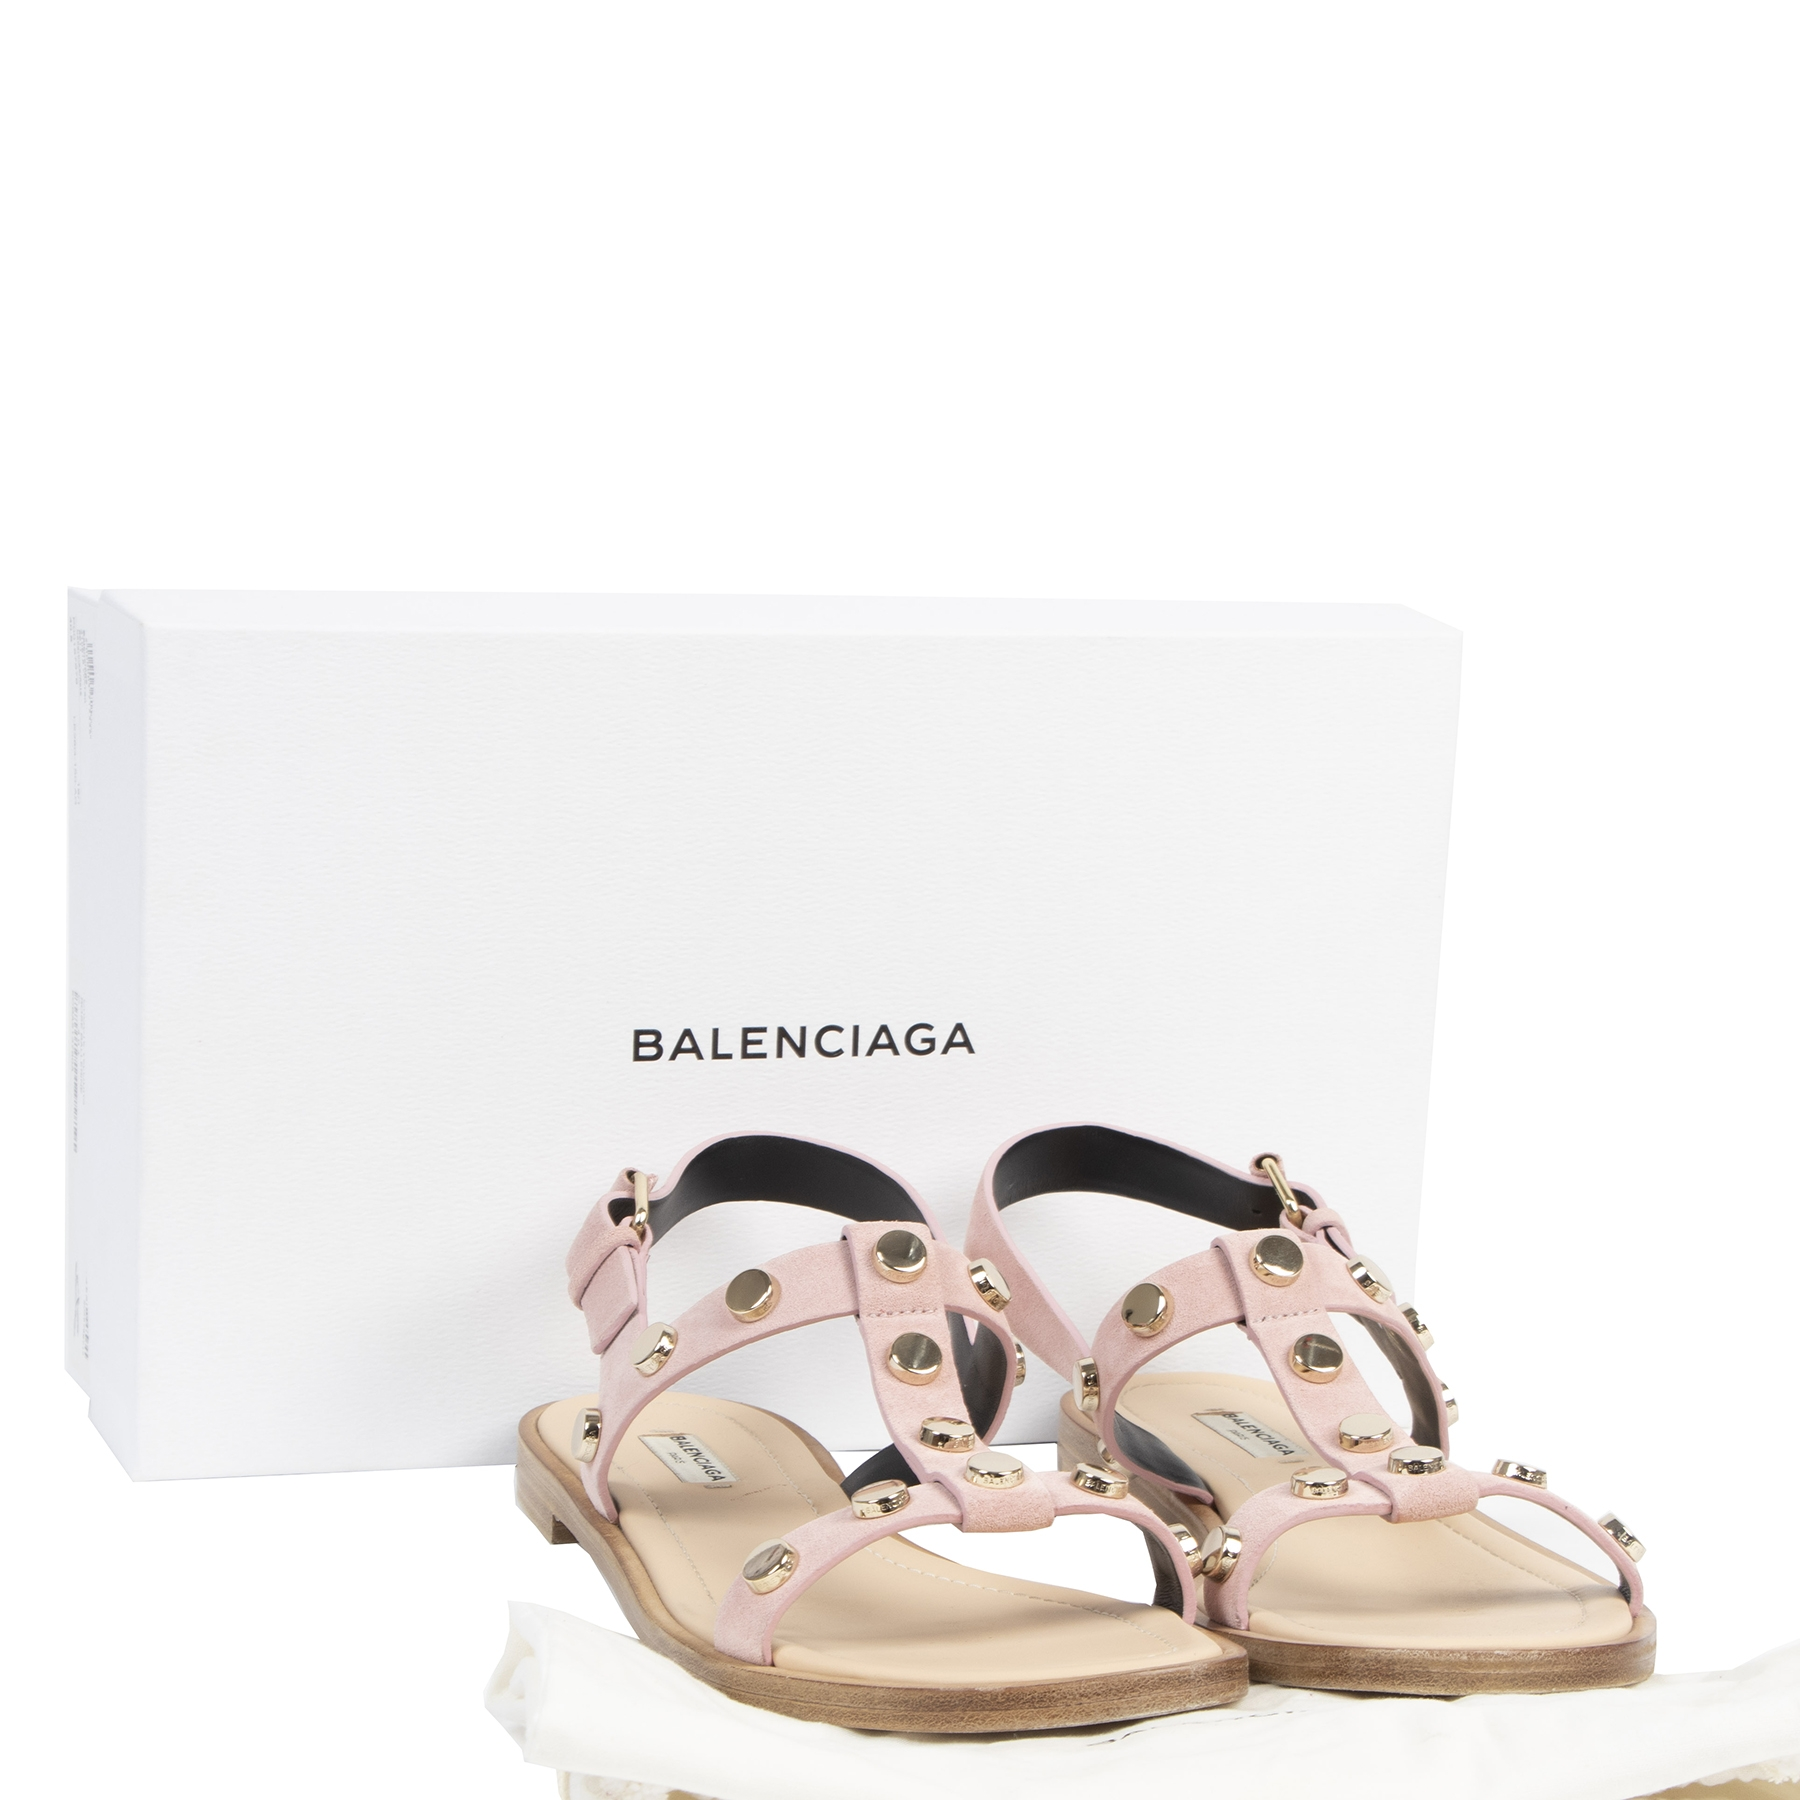 Balenciaga Pink Studded Sandals - size 40.5 - for sale at labellov secondhand luxury in Antwerp